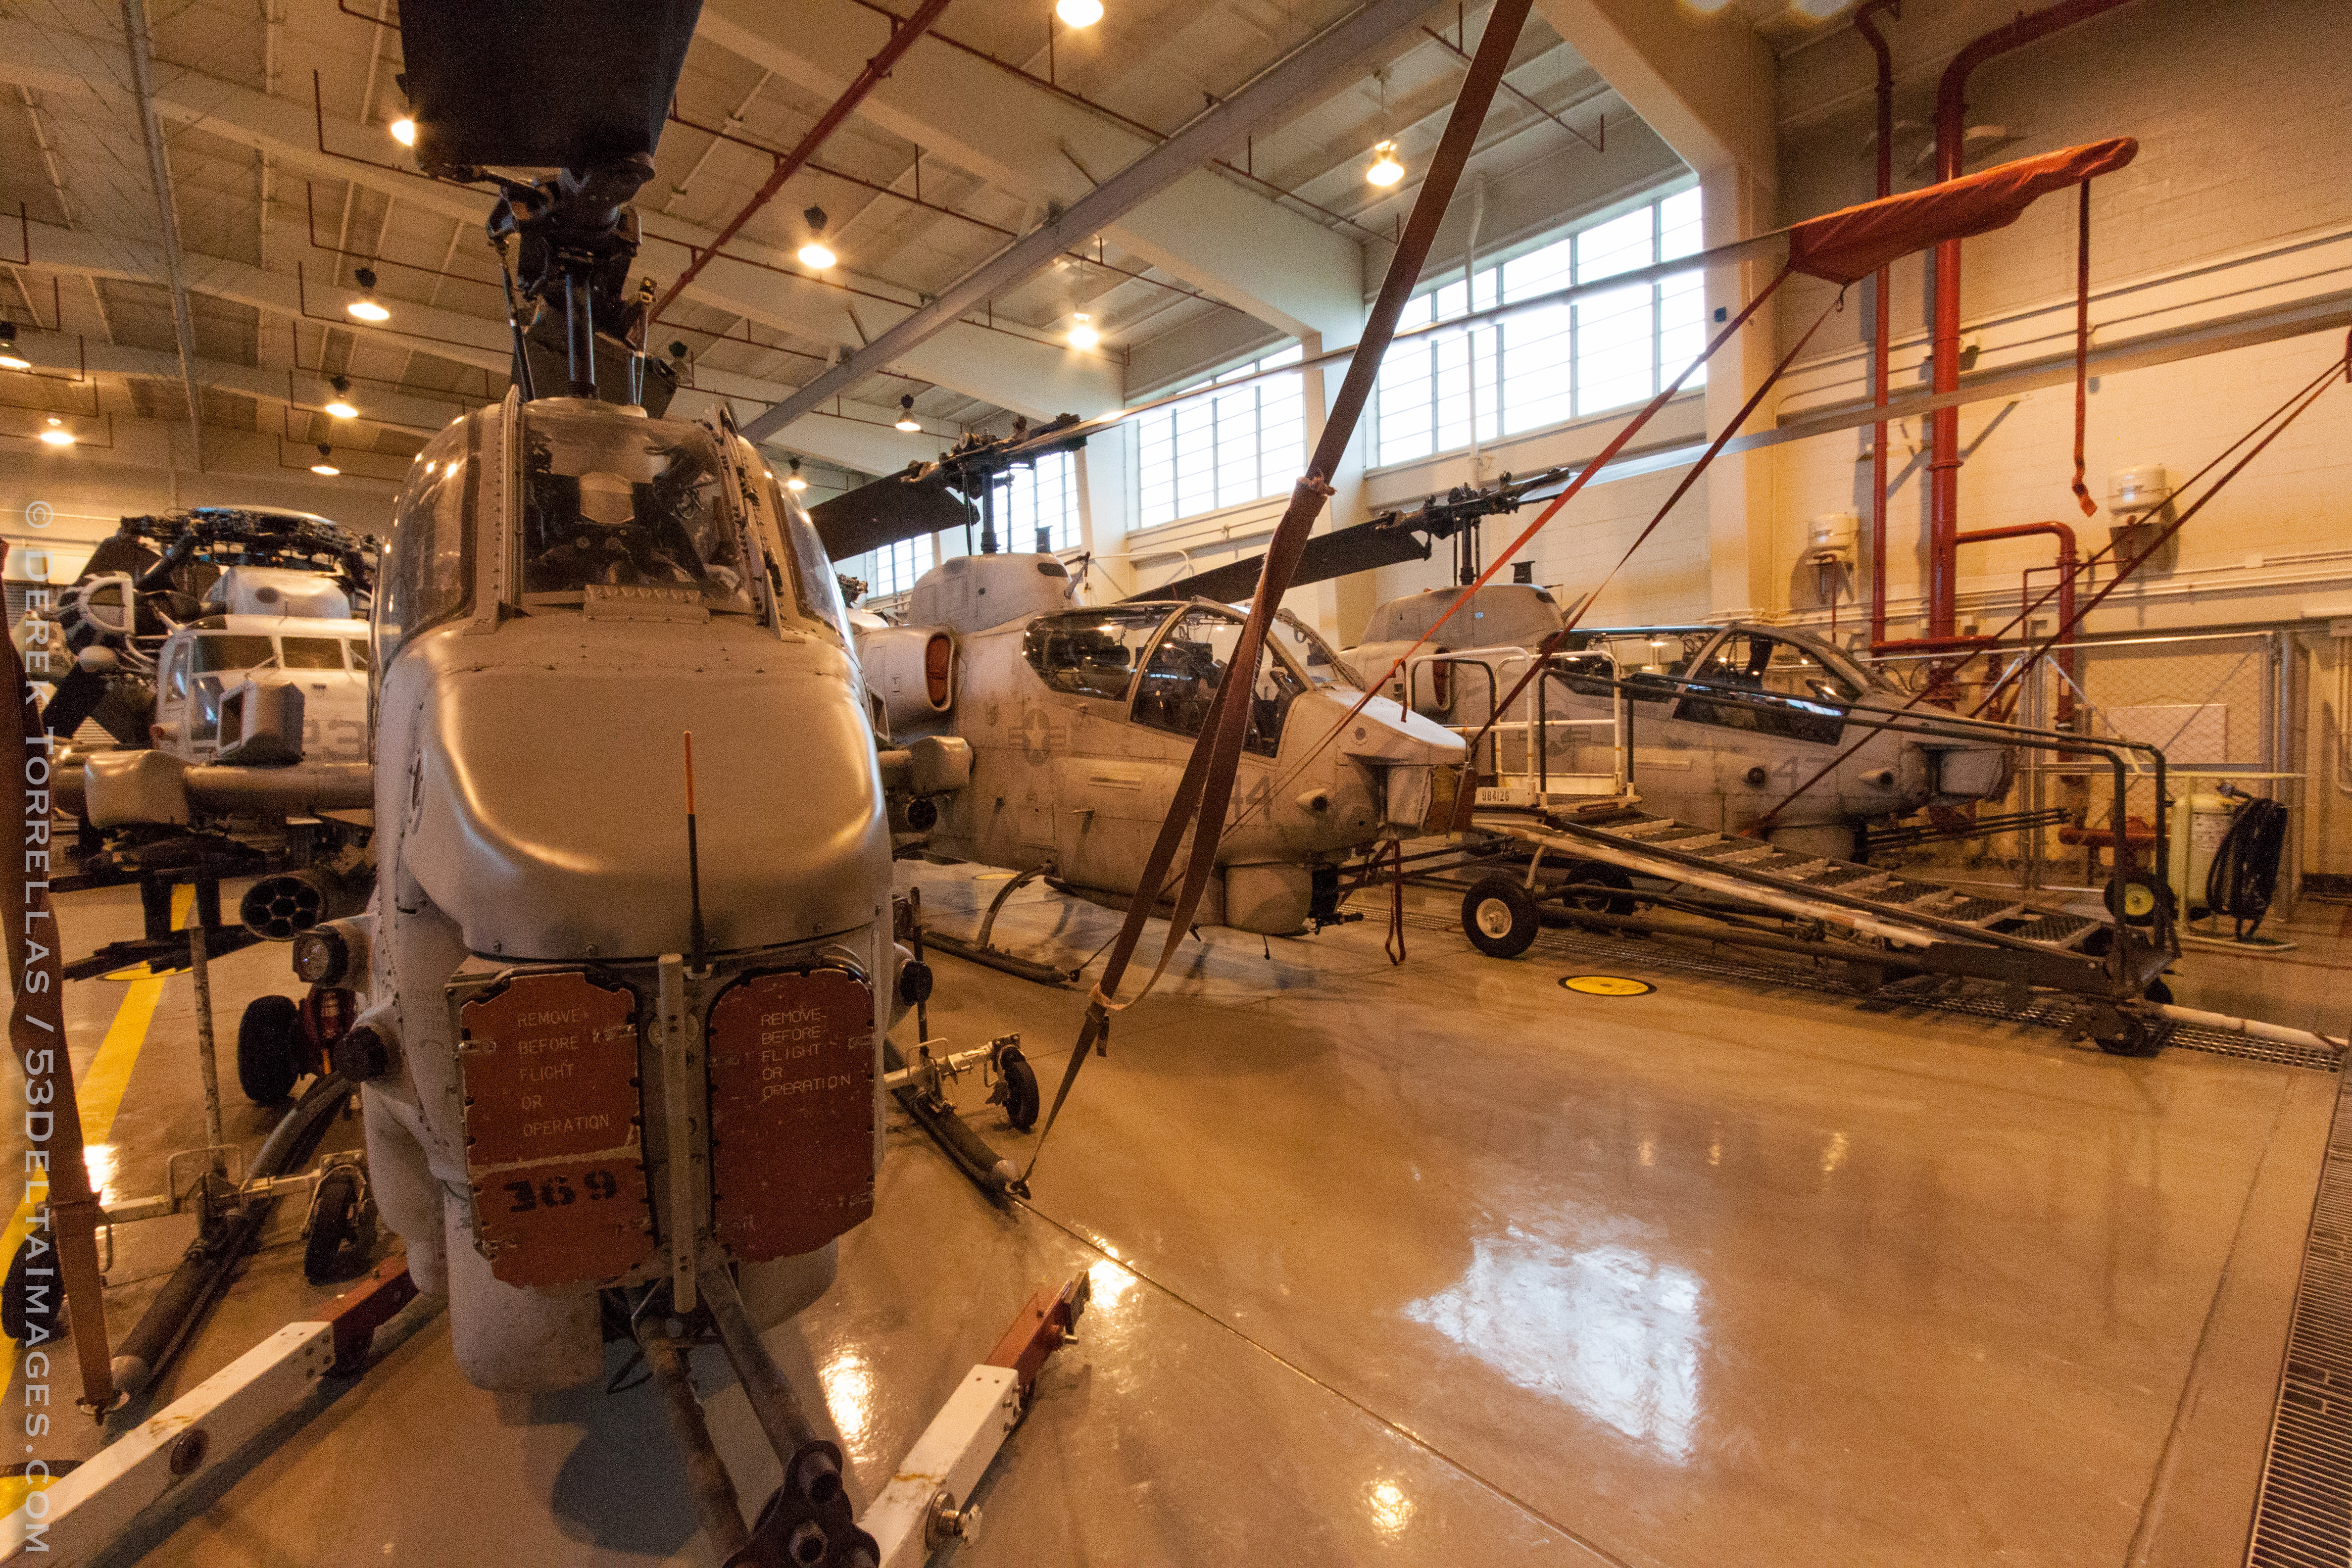 Inside the Refurbished Hangar and Shop Photo   Derek Torrellas   53     Traditionally  there usually is a squadron and or shop photo associated  with a deployment  Instead of making a mundane shop photo wearing our  cammies after